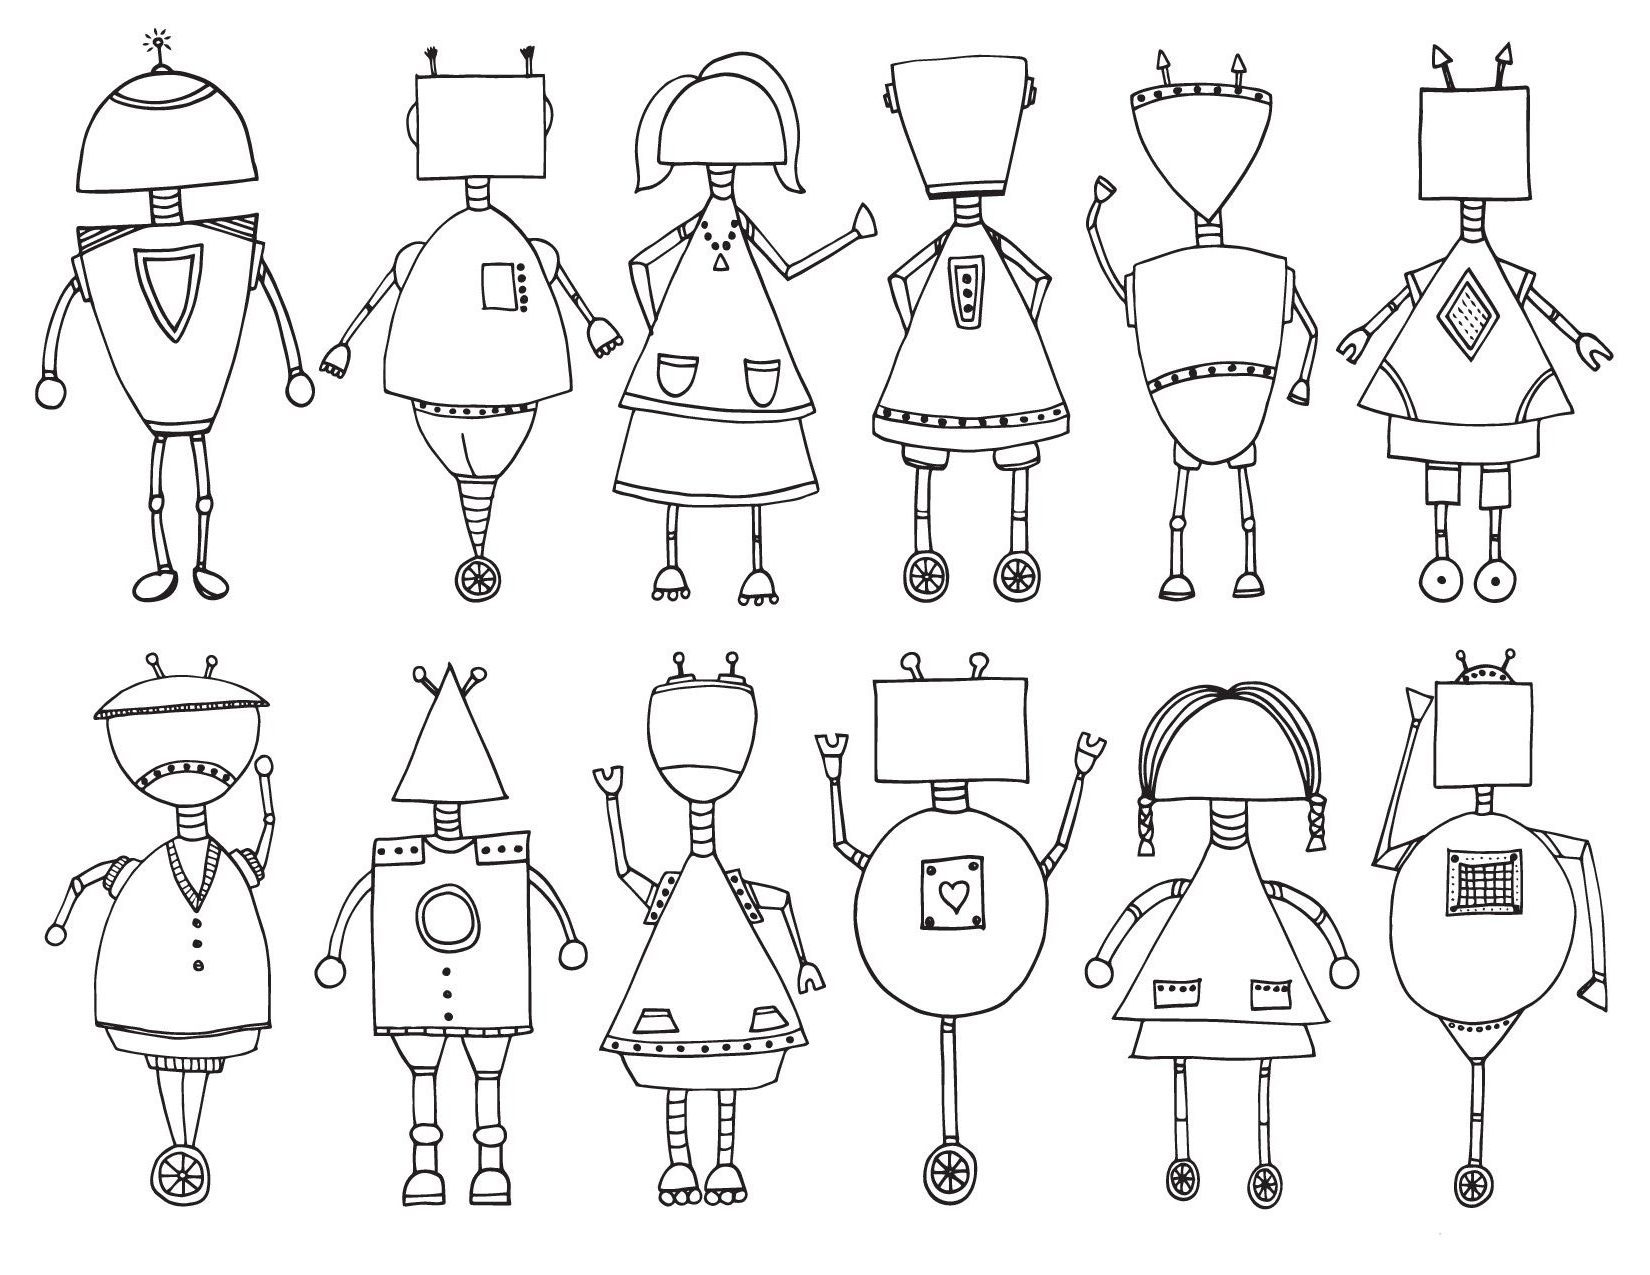 Robots of different types